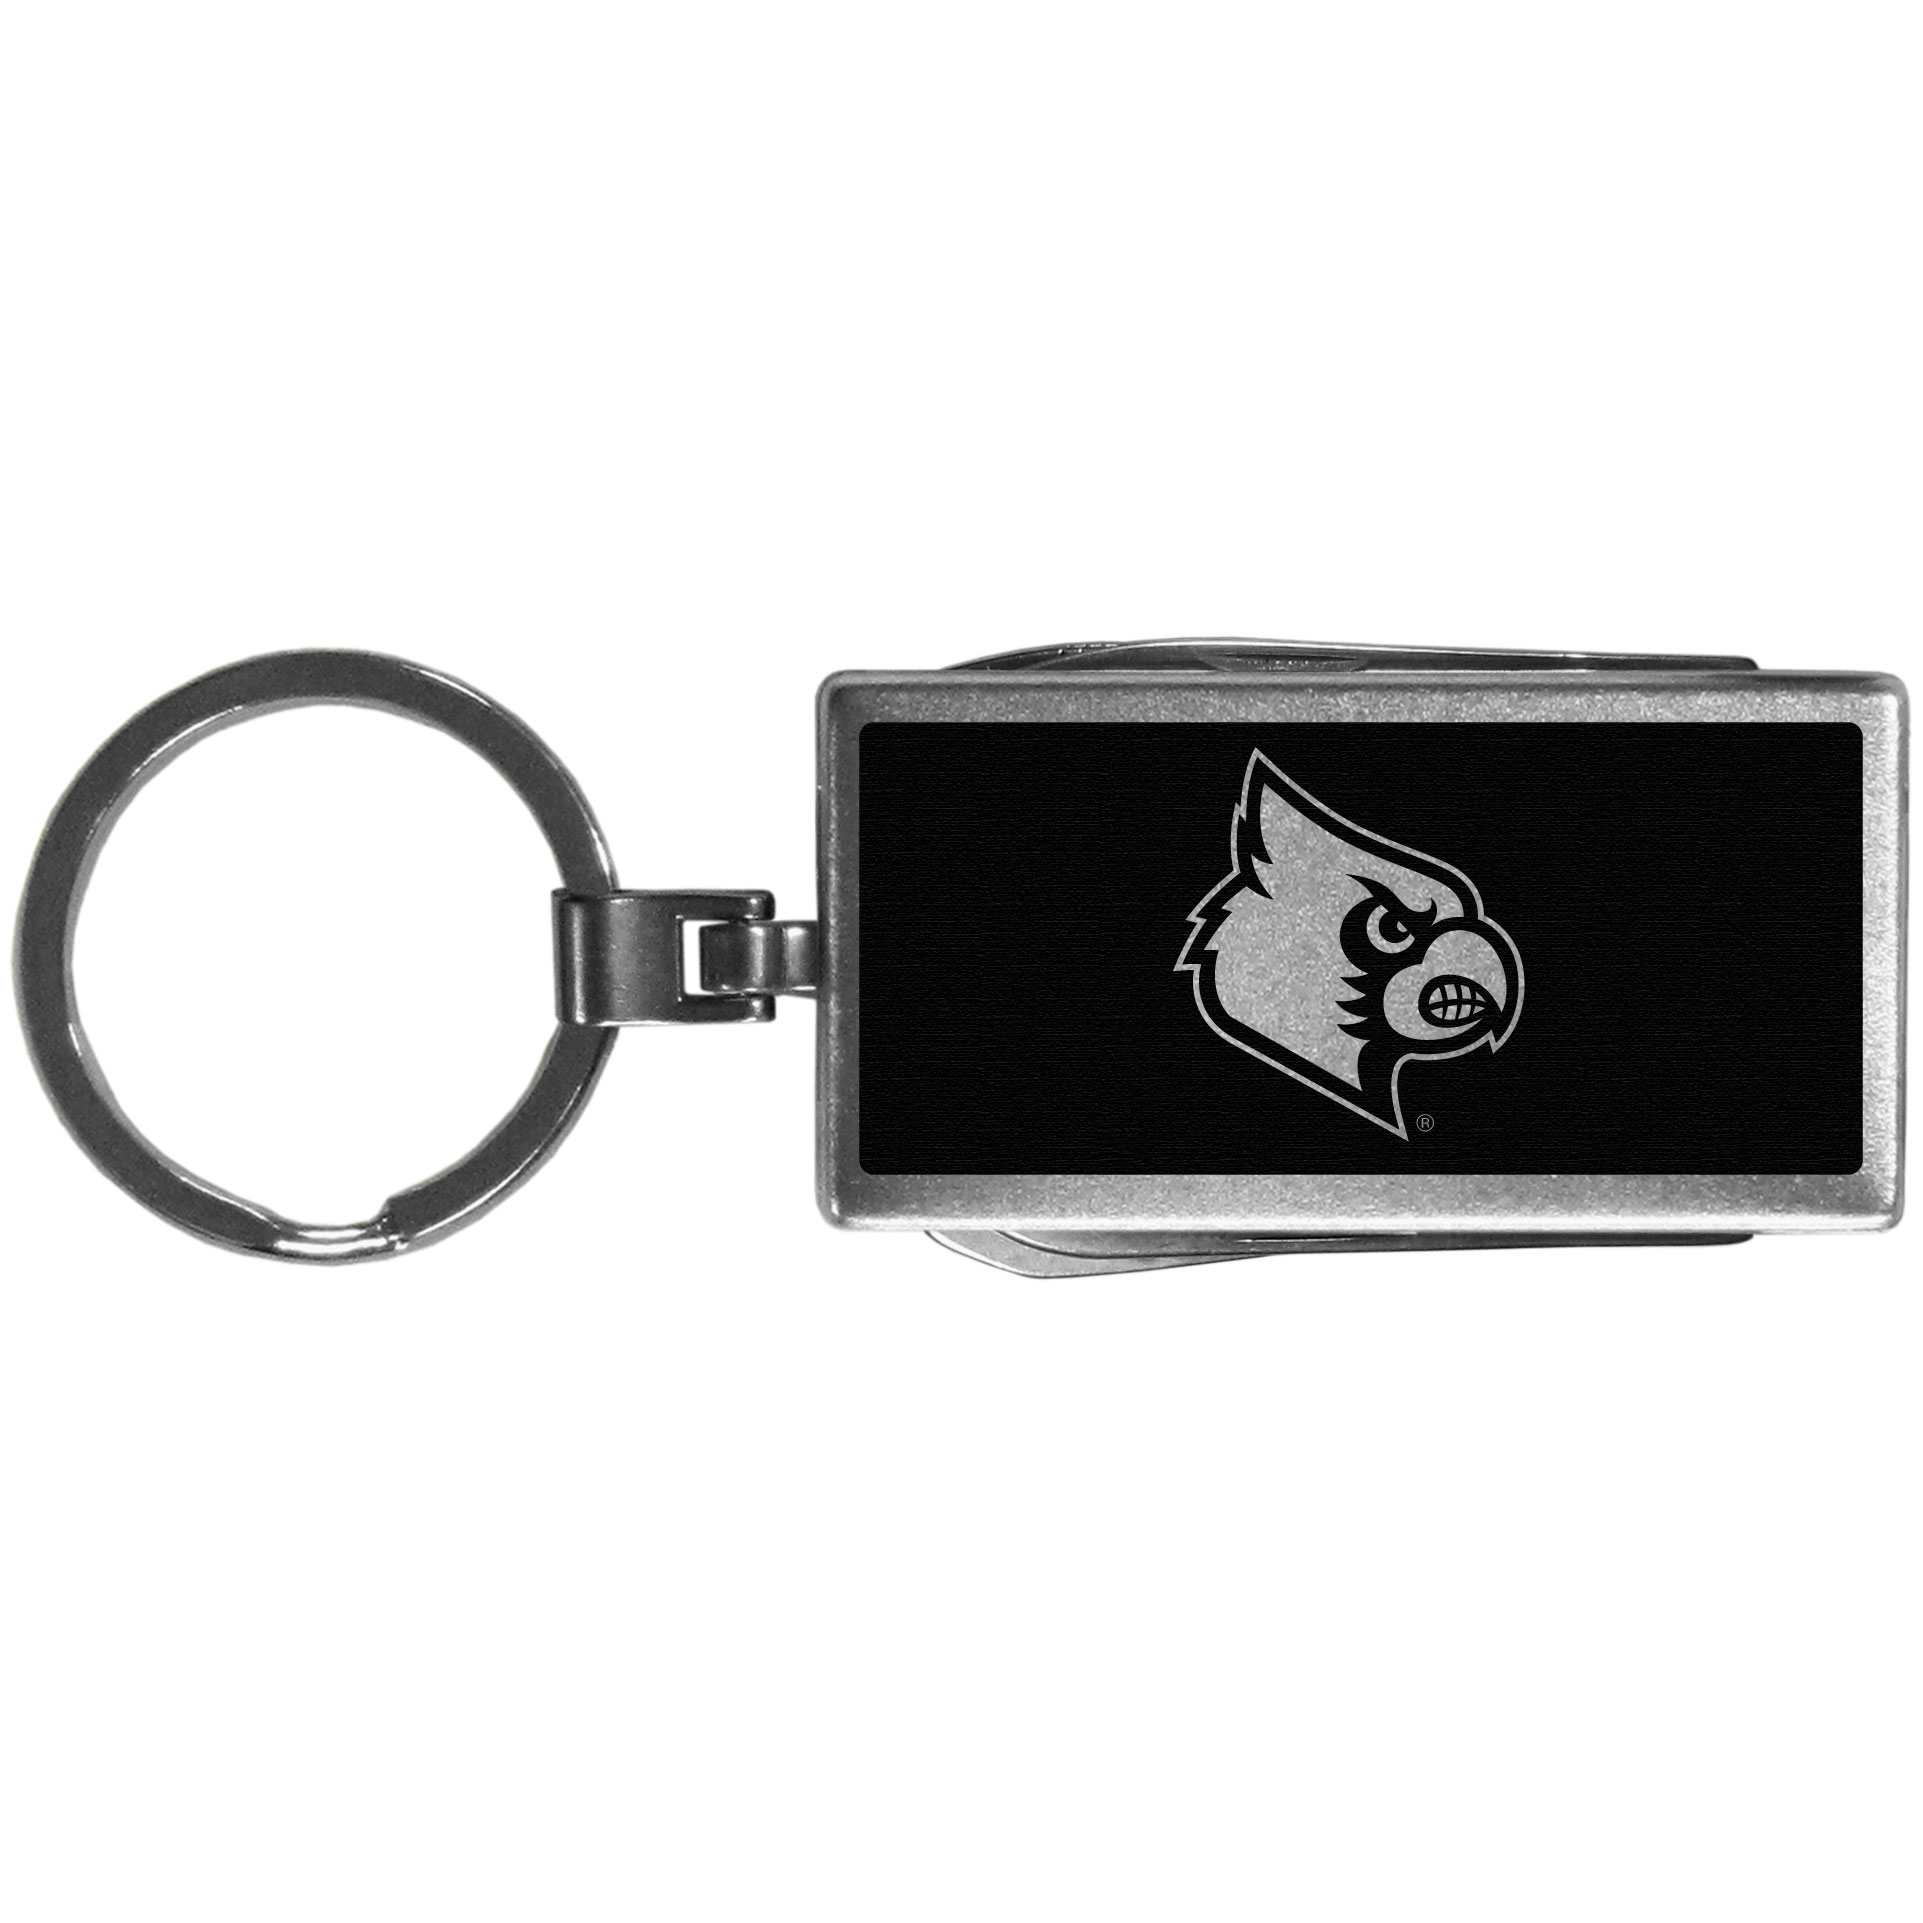 Louisville Cardinals Multi-tool Key Chain, Black - Be the hero at the tailgate, camping, or on a Friday night with your Louisville Cardinals Multi-Tool Keychain which comes complete with bottle opener, scissors, knife, nail file and screw driver. Be it opening a package or a beverage Siskiyou's Multi-Tool Keychain goes wherever your keys do. The keychain hangs at 4 inches long when closed.